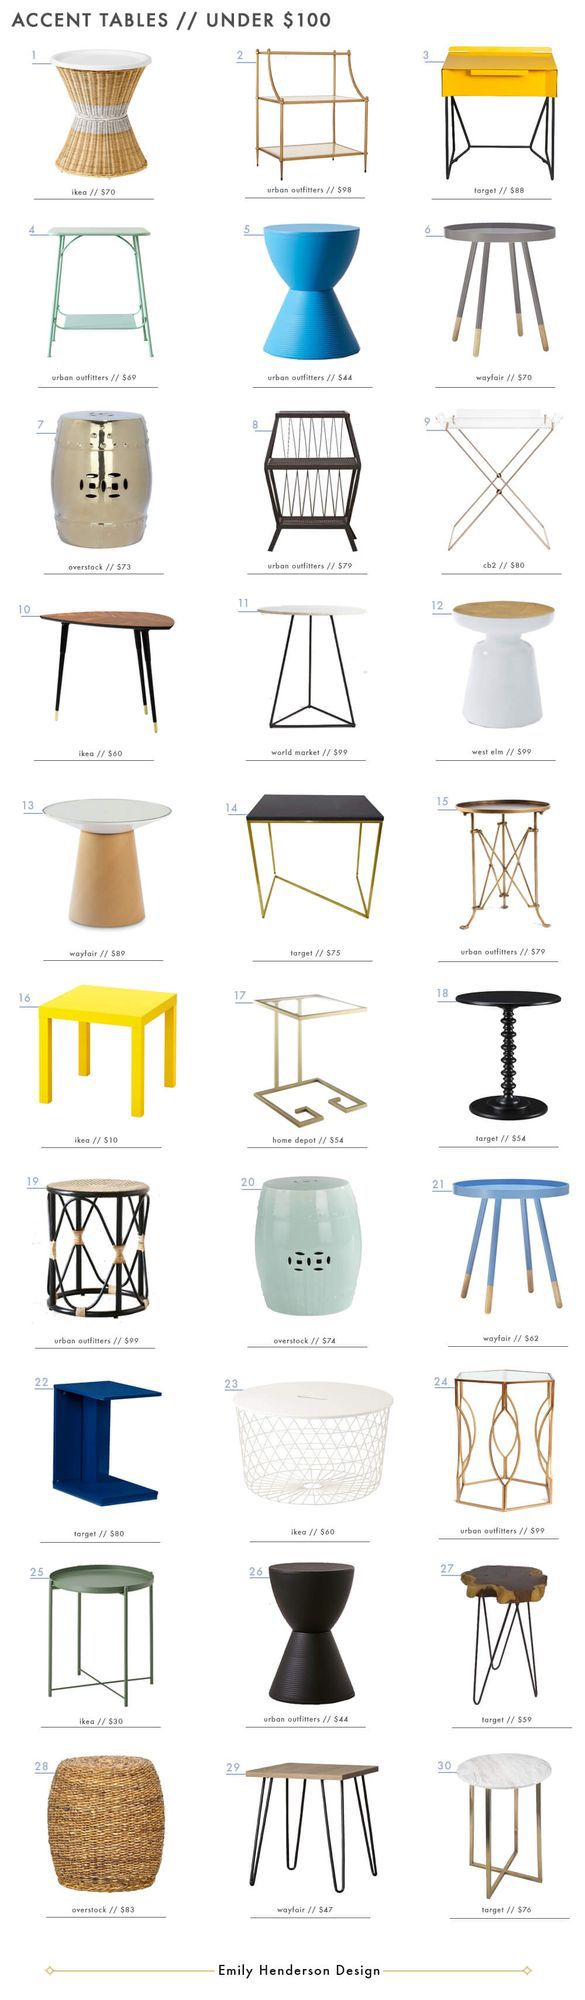 1615 best Interiors : Furnish images on Pinterest | Kitchen tables ...